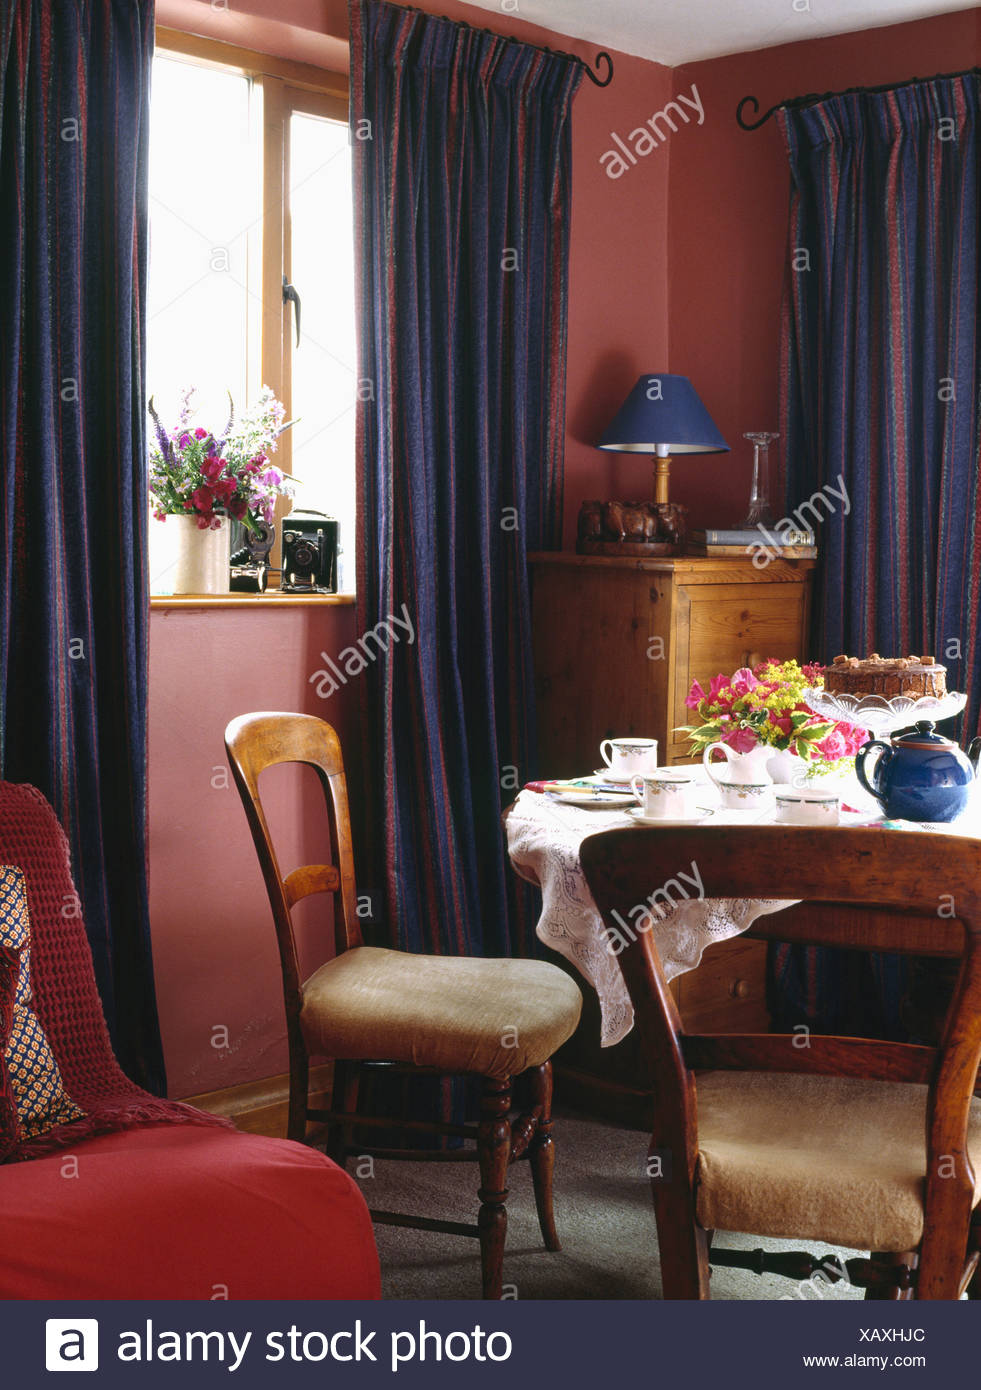 Dark Blue Curtains And Antique Chairs In Small Red Country Dining Room With  Teaset On The Table